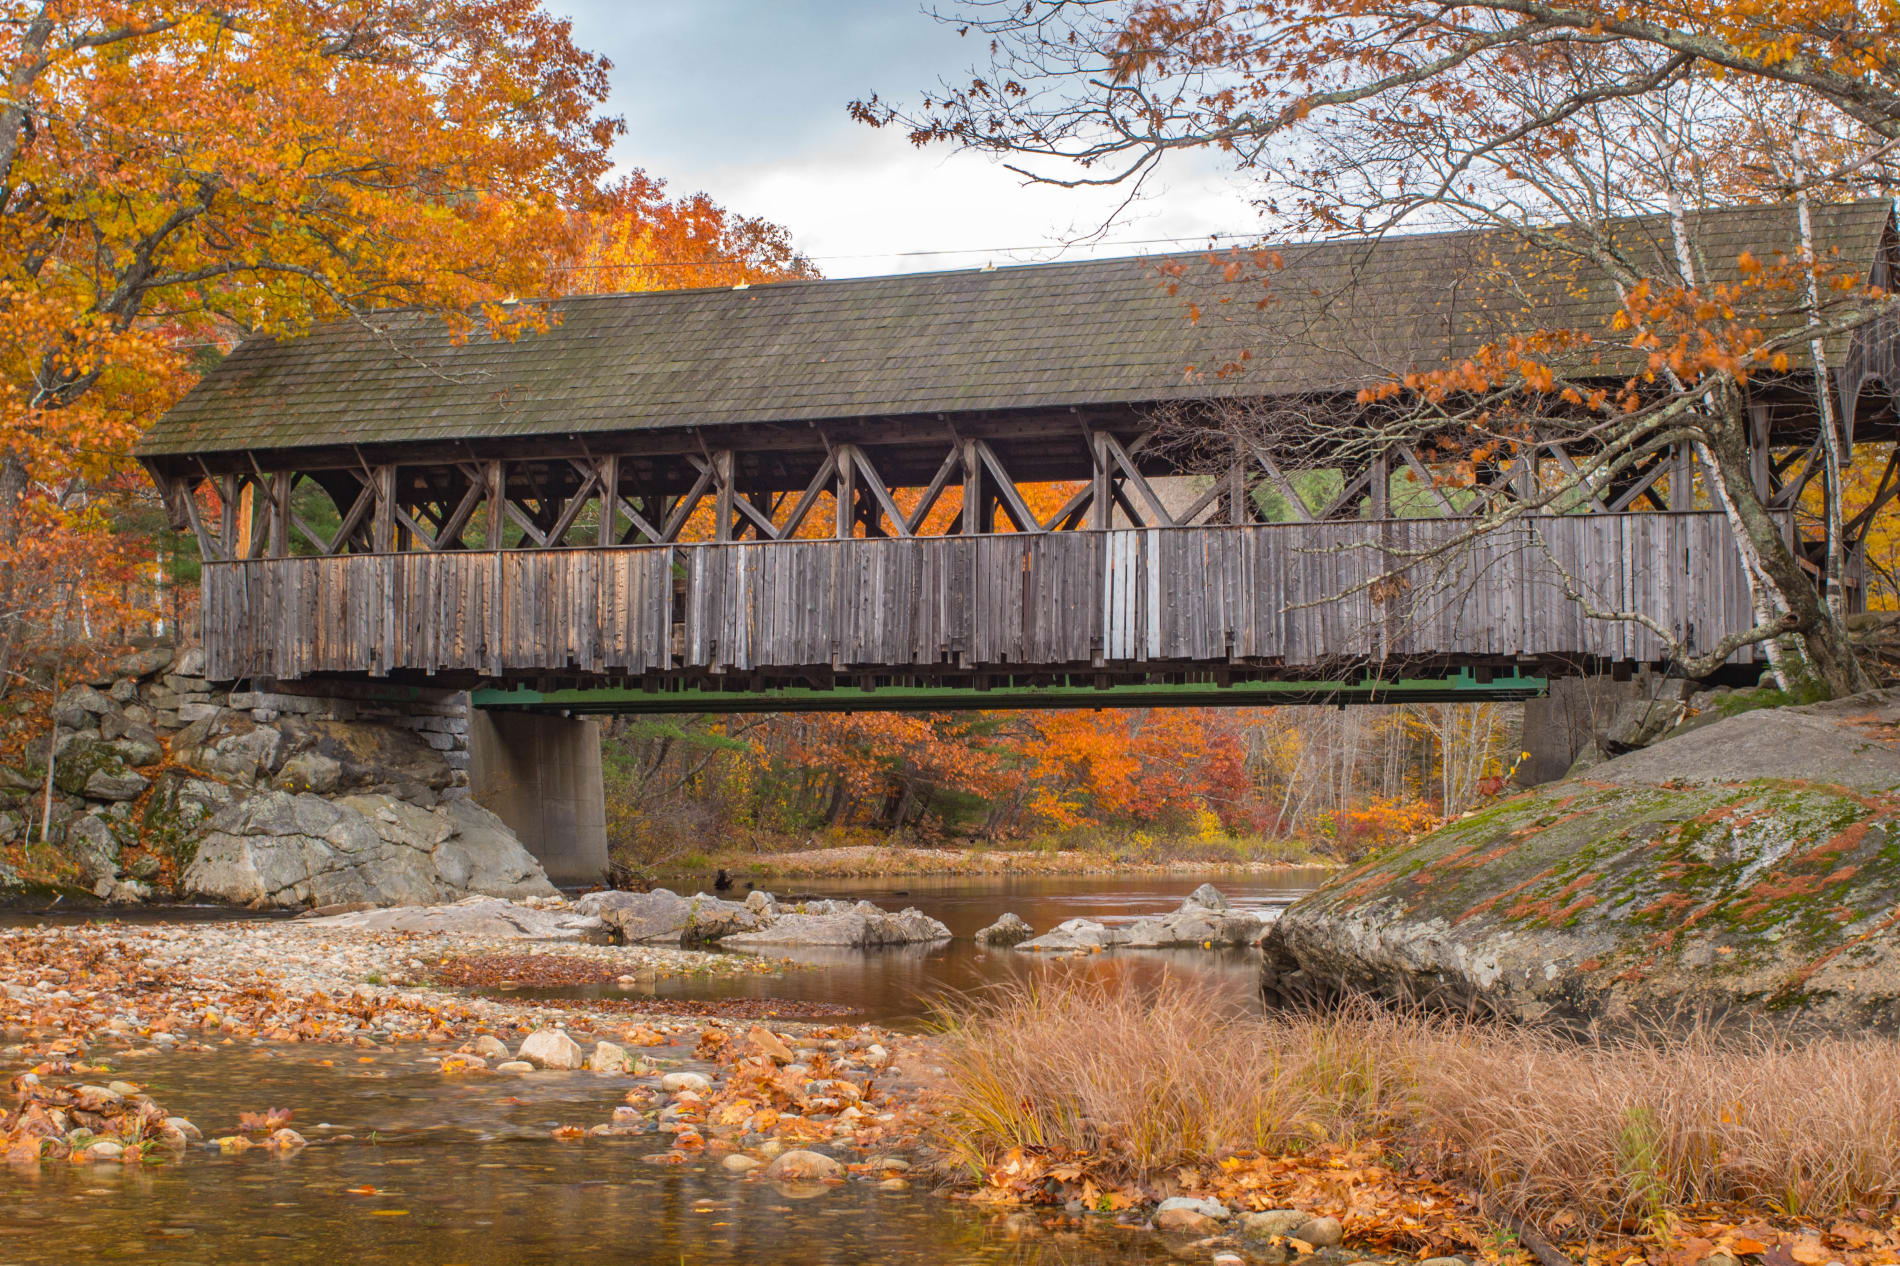 Kirk-Erickson---Mainescape-Media-Covered-Bridge-in-fall-w1900.jpg